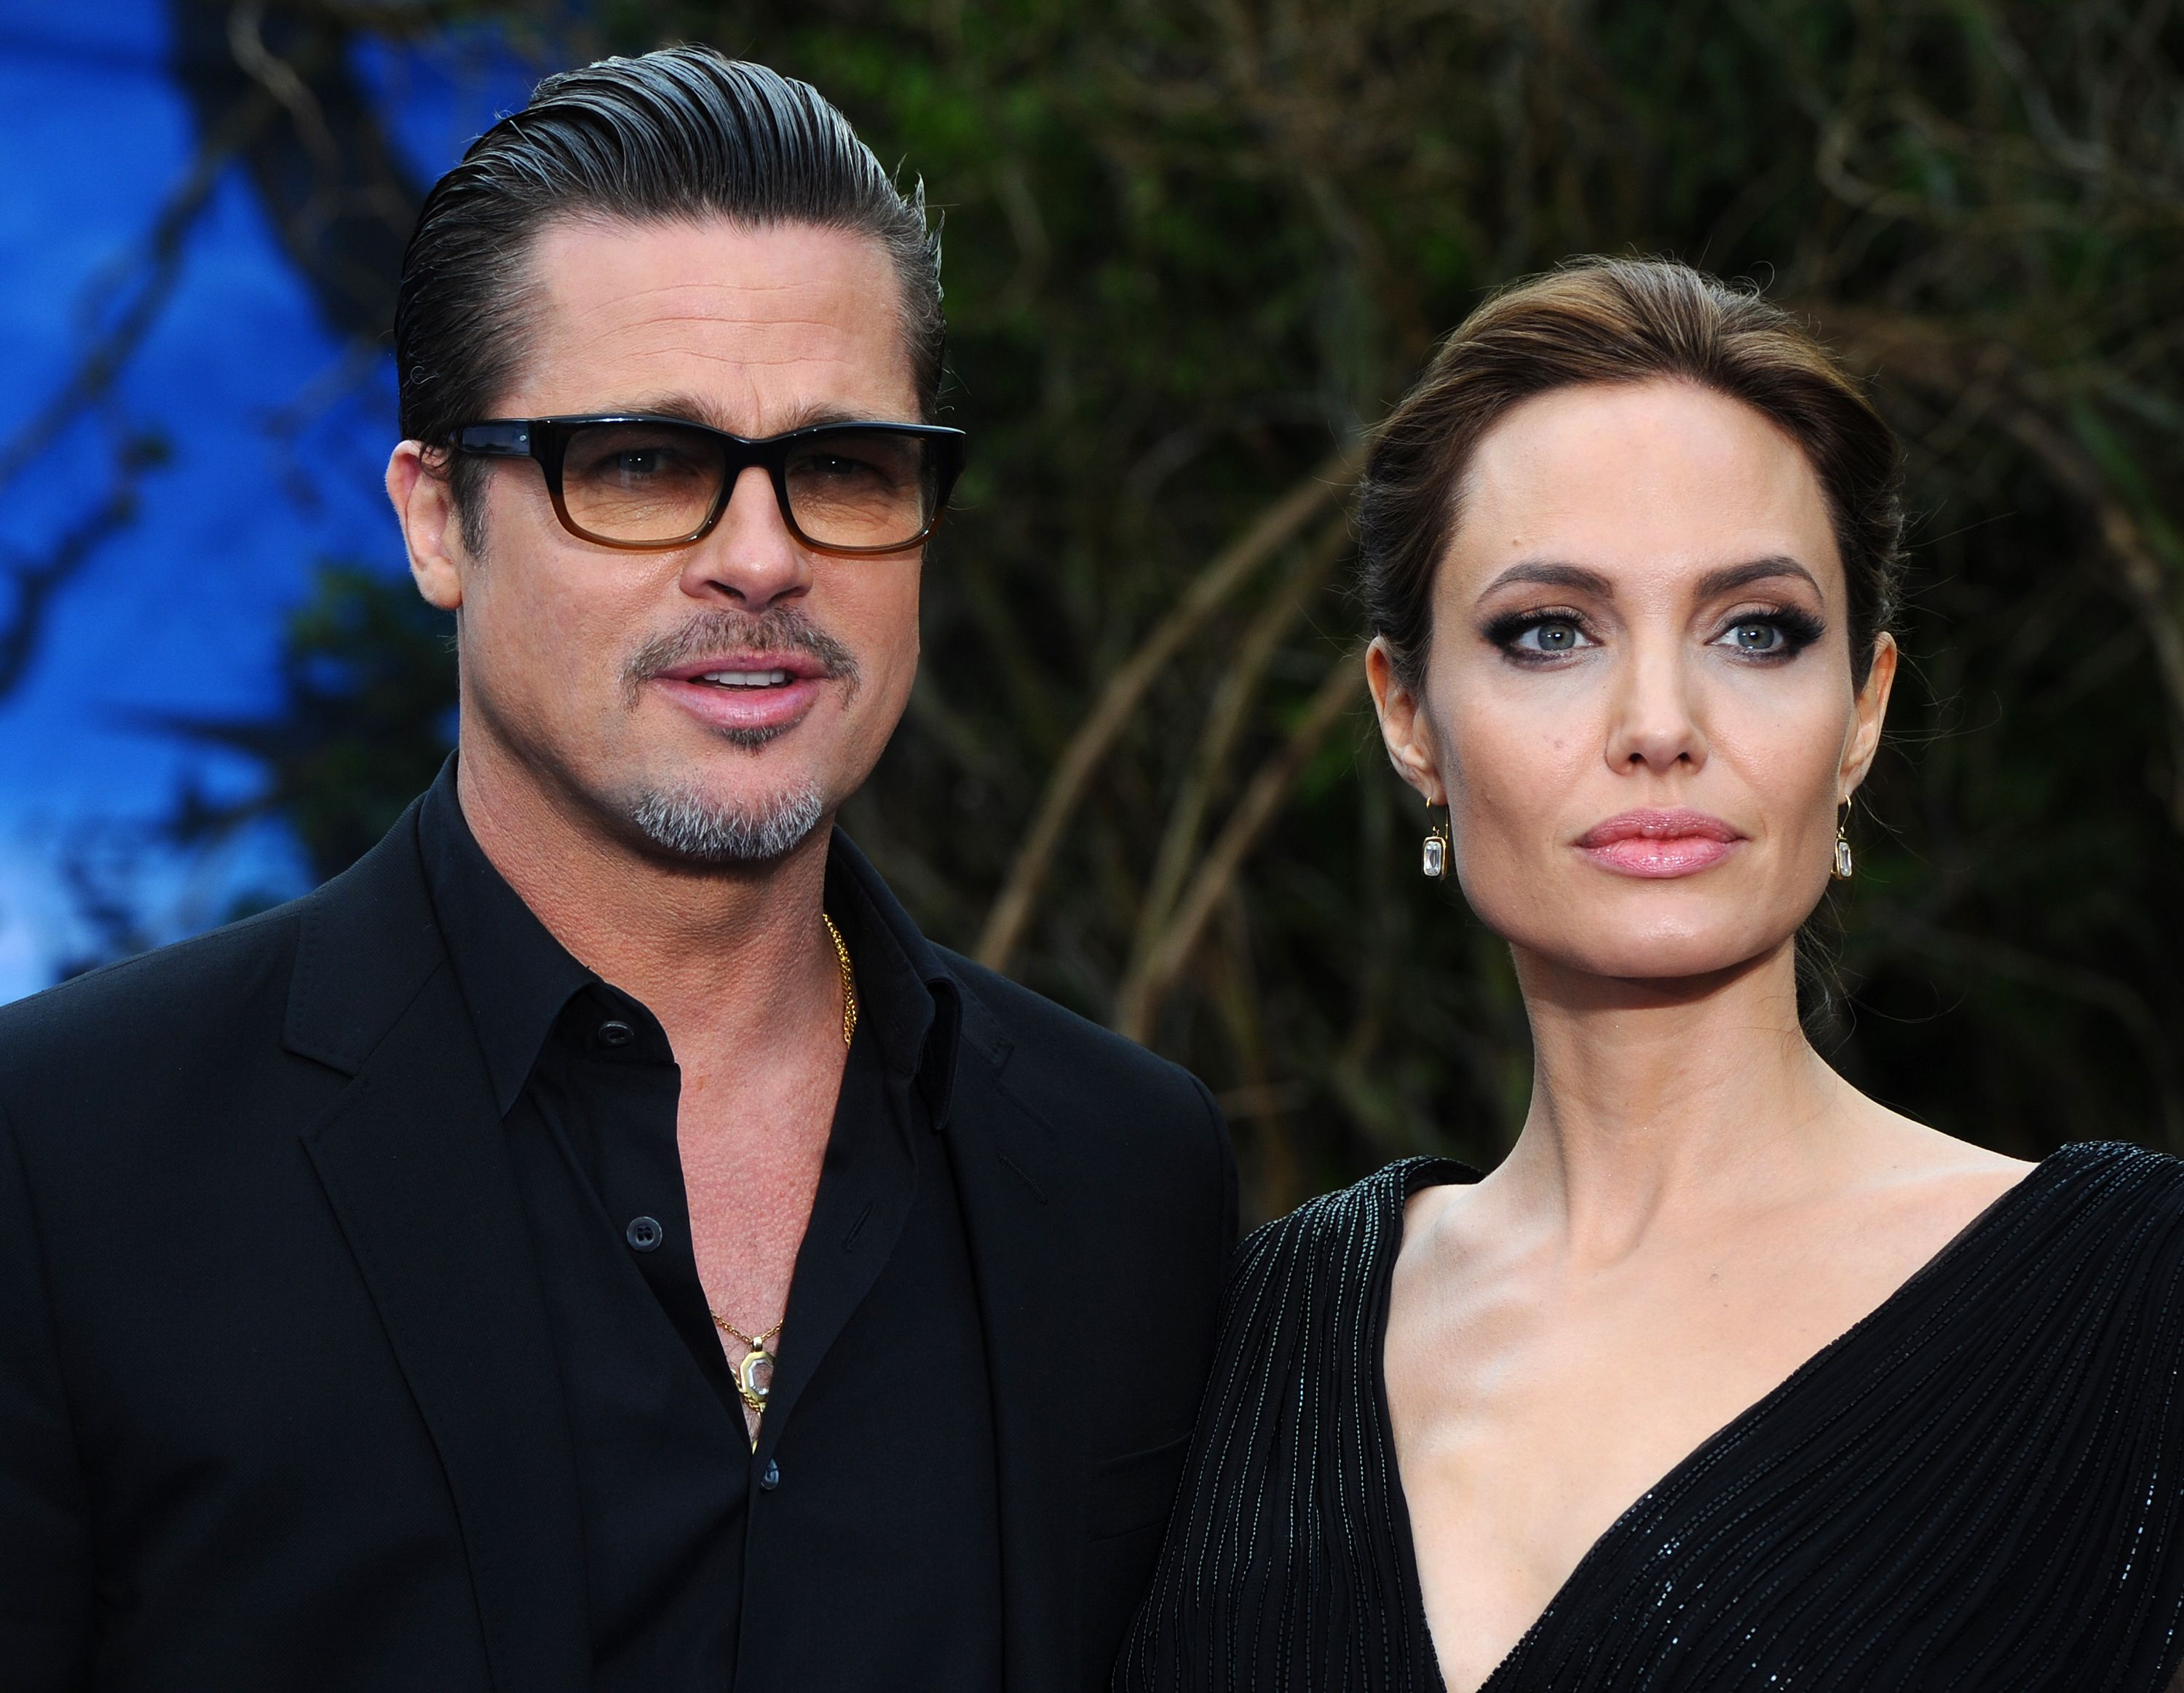 Angelina Jolie Recieves One of the Most Devastating News About Her Divorce